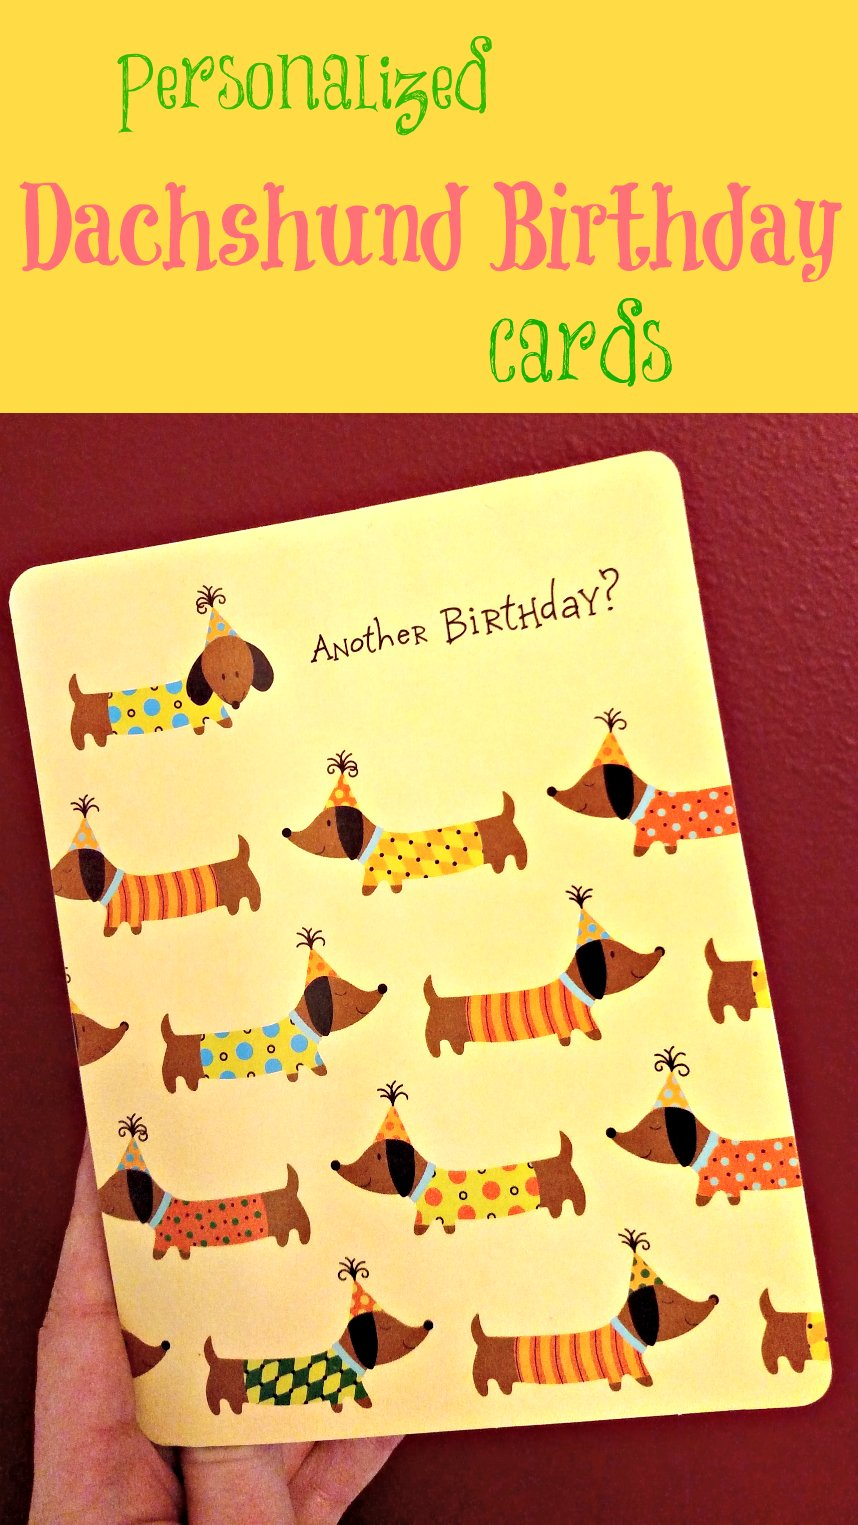 Dachshunds Birthday cards